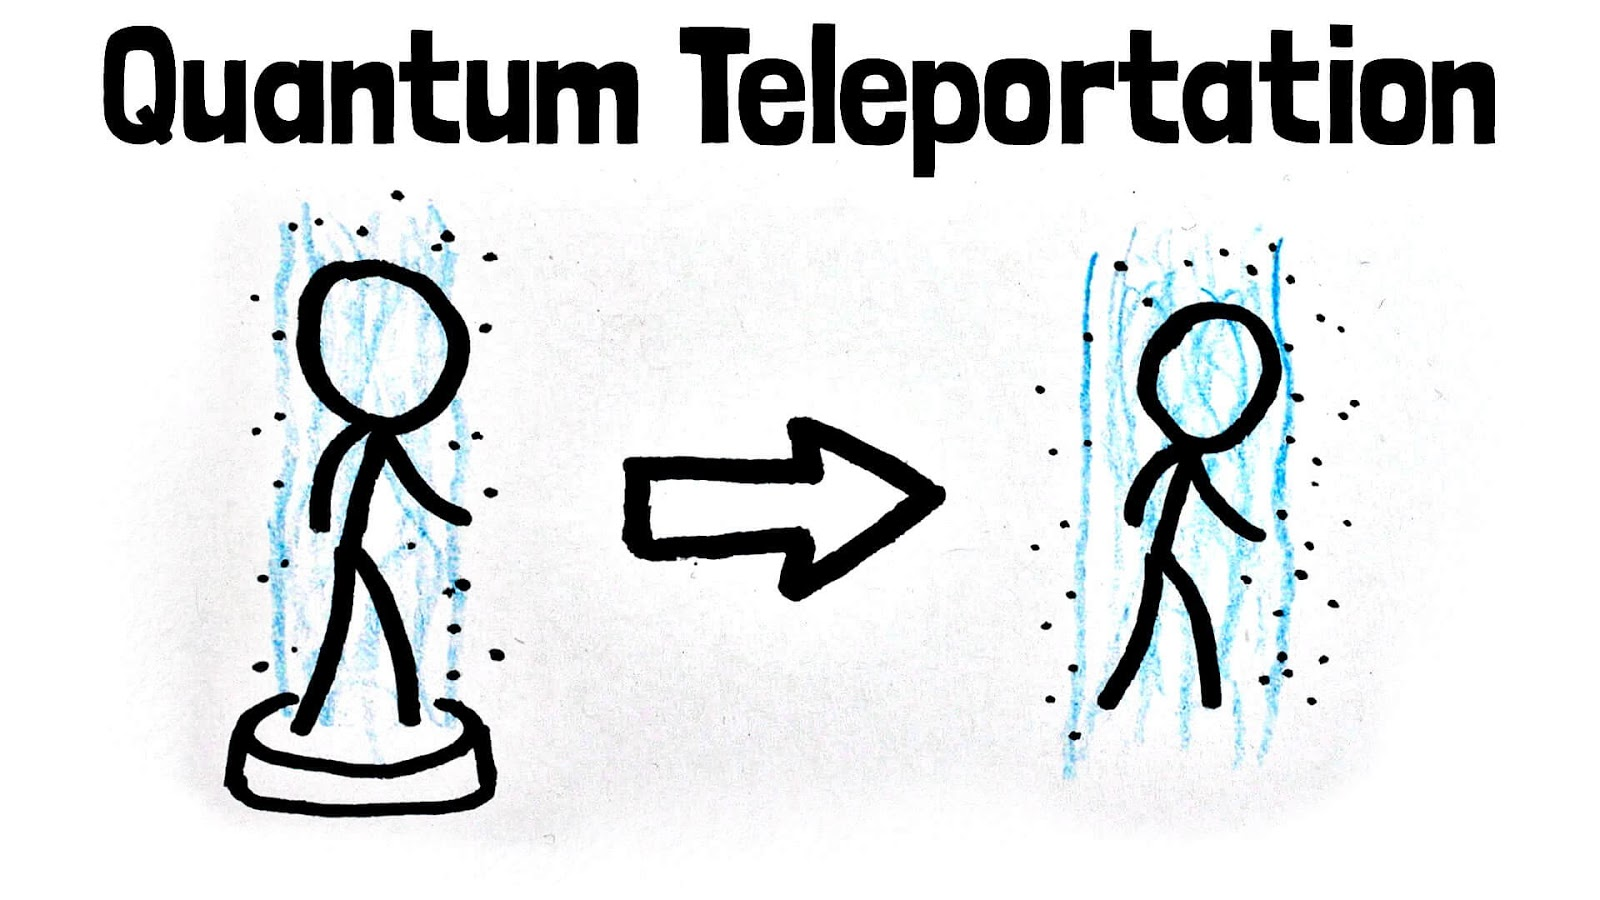 Teleportation Using Quantum Physics Has Now Become Reality